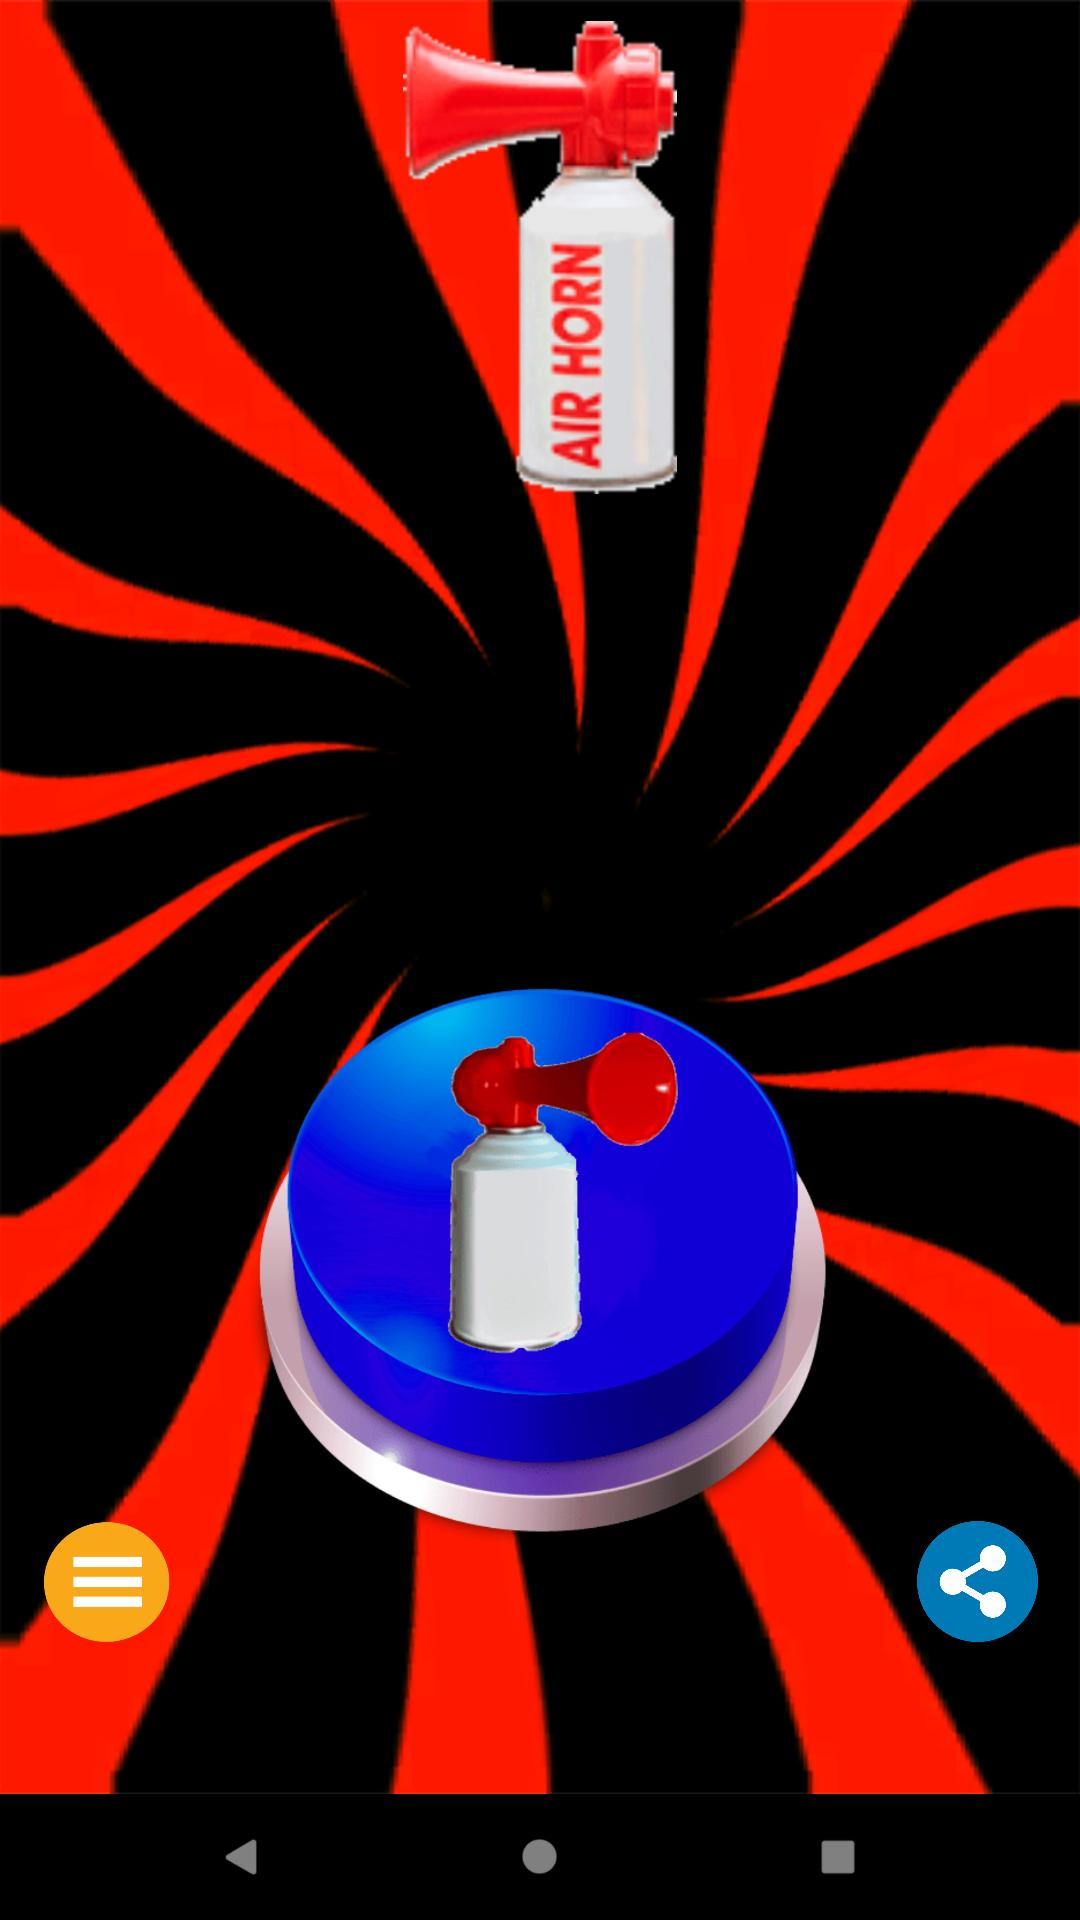 MLG Air Horn Meme Button for Android - APK Download